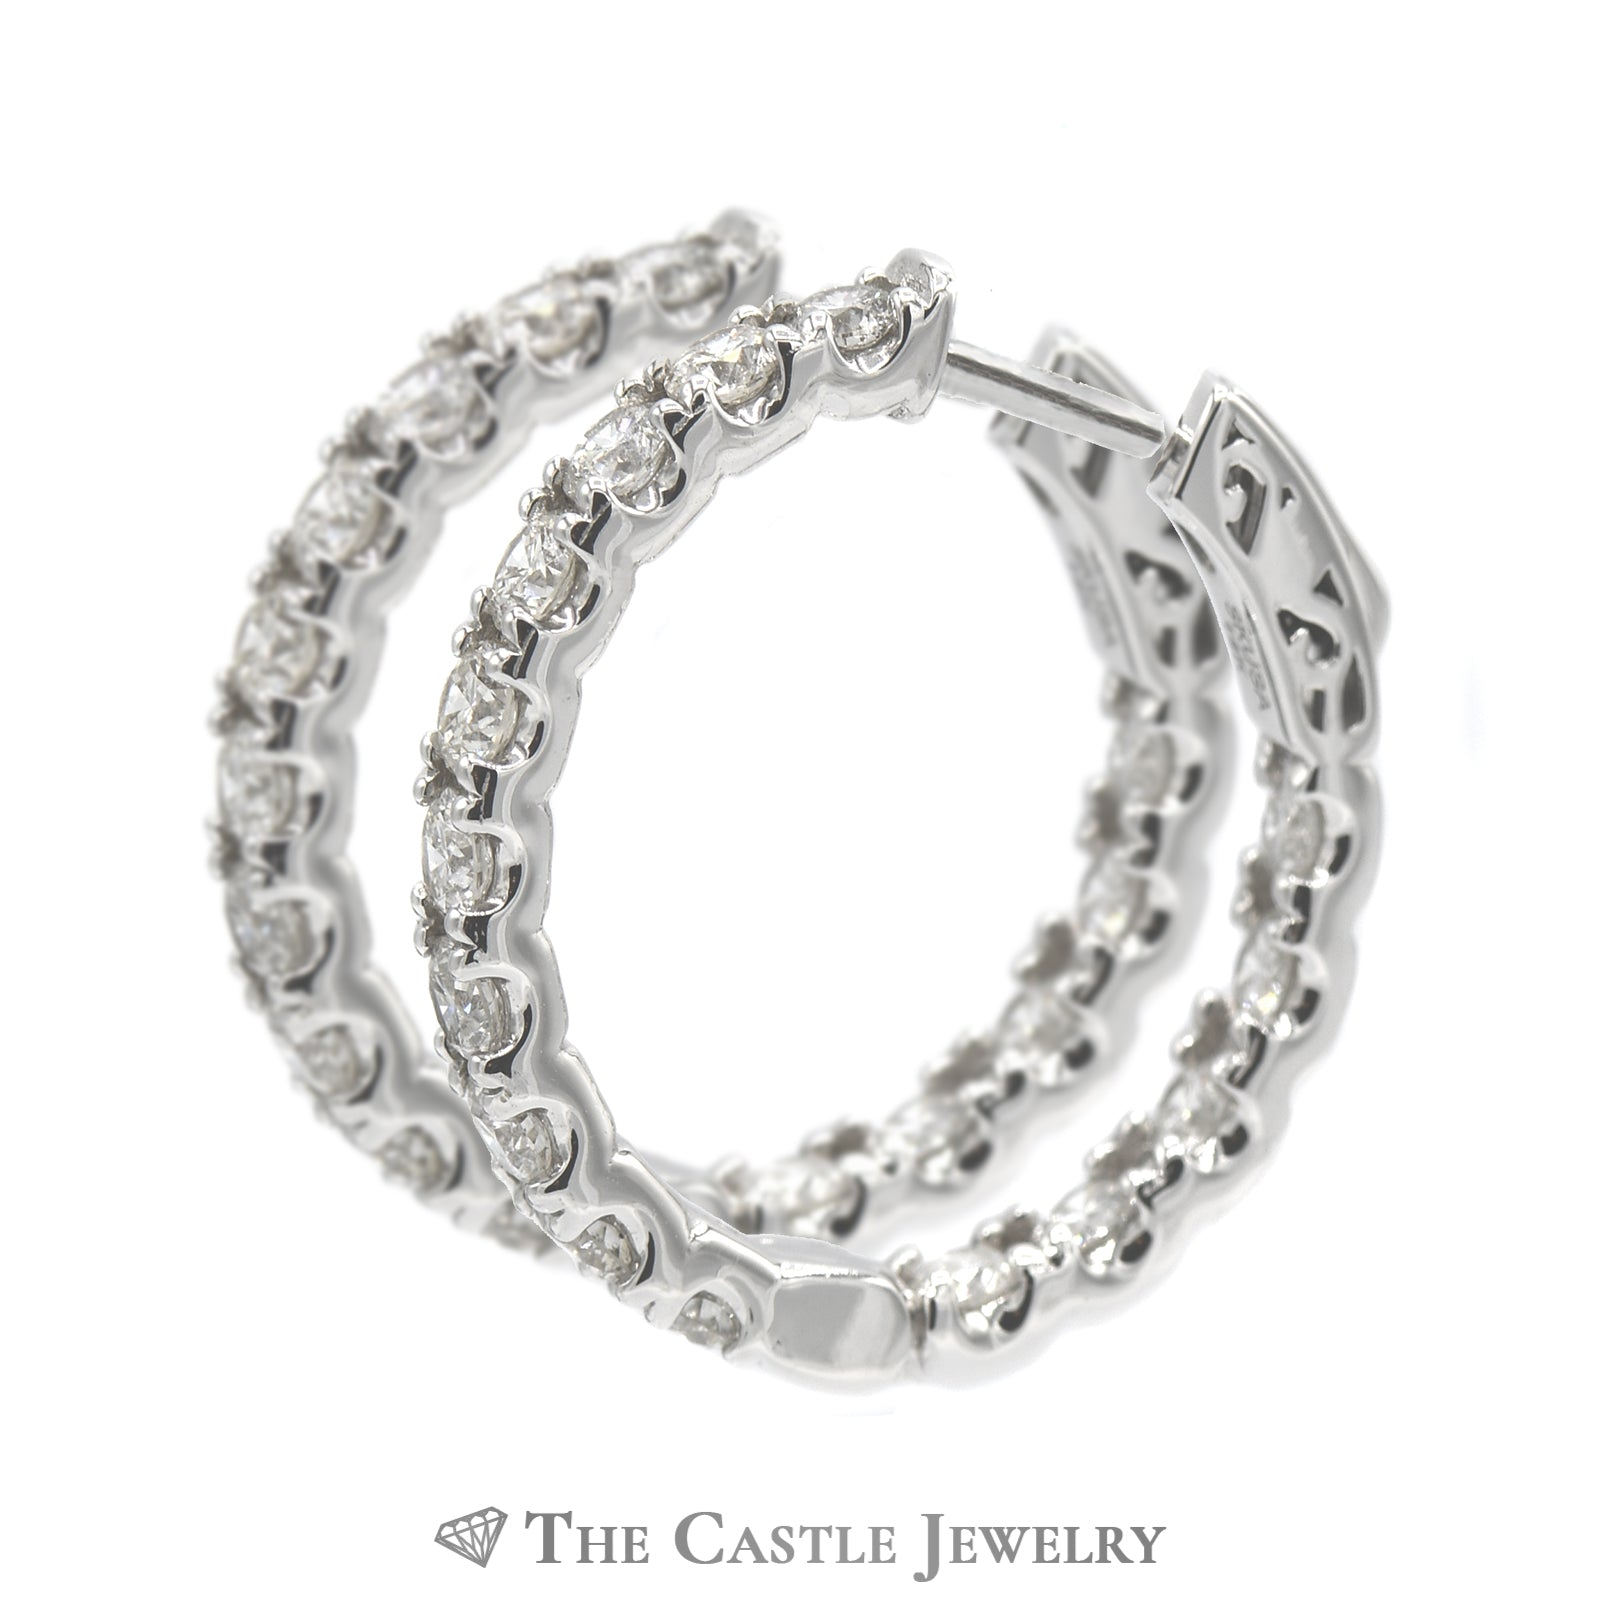 3cttw Hollywood Hoop Earrings in 14K White Gold-1